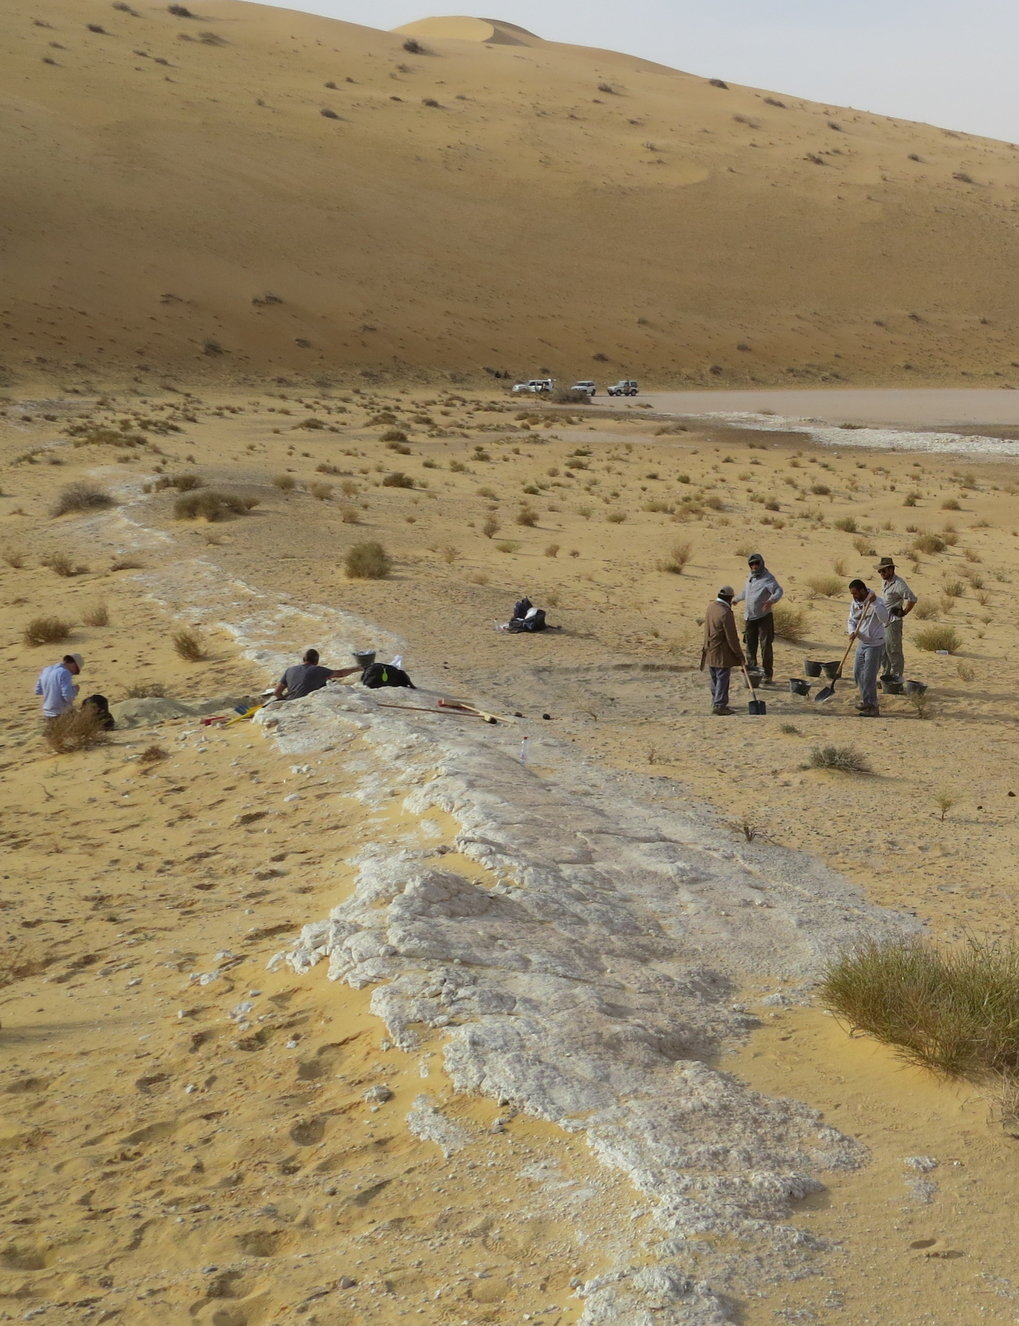 General view of the excavations at the Al Wusta site, Saudi Arabia.  The ancient lake bed (in white) is surrounded by sand dunes of the Nefud Desert.